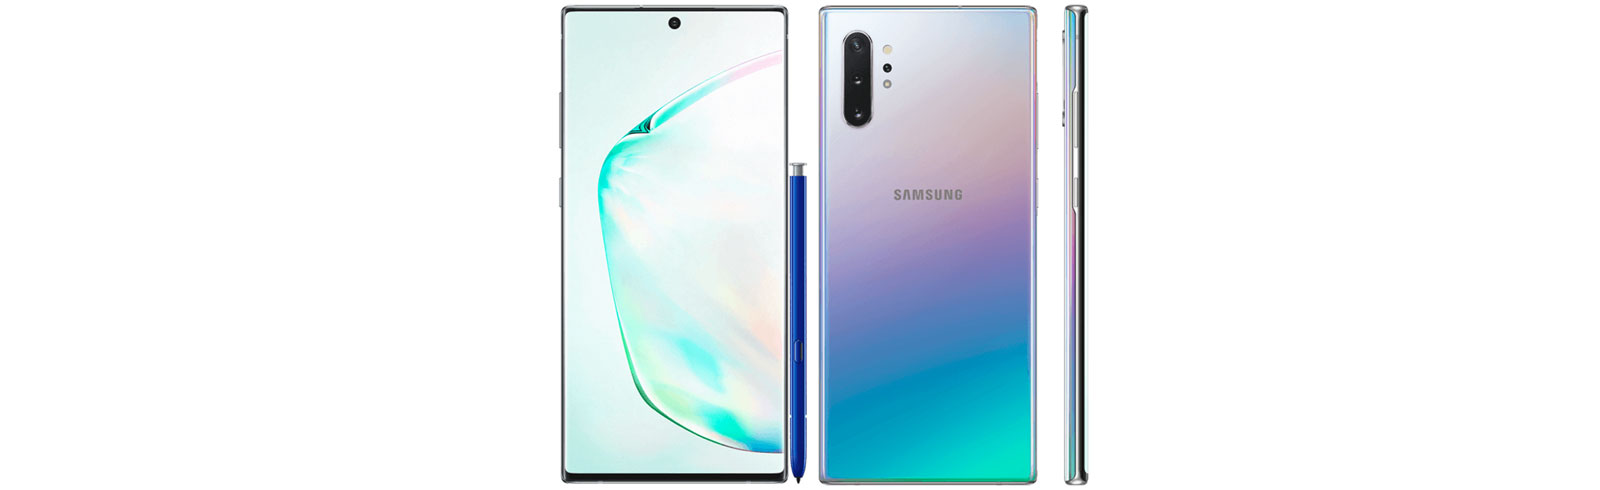 Samsung Galaxy Note 10 and Galaxy Note 10 Plus official renders leak